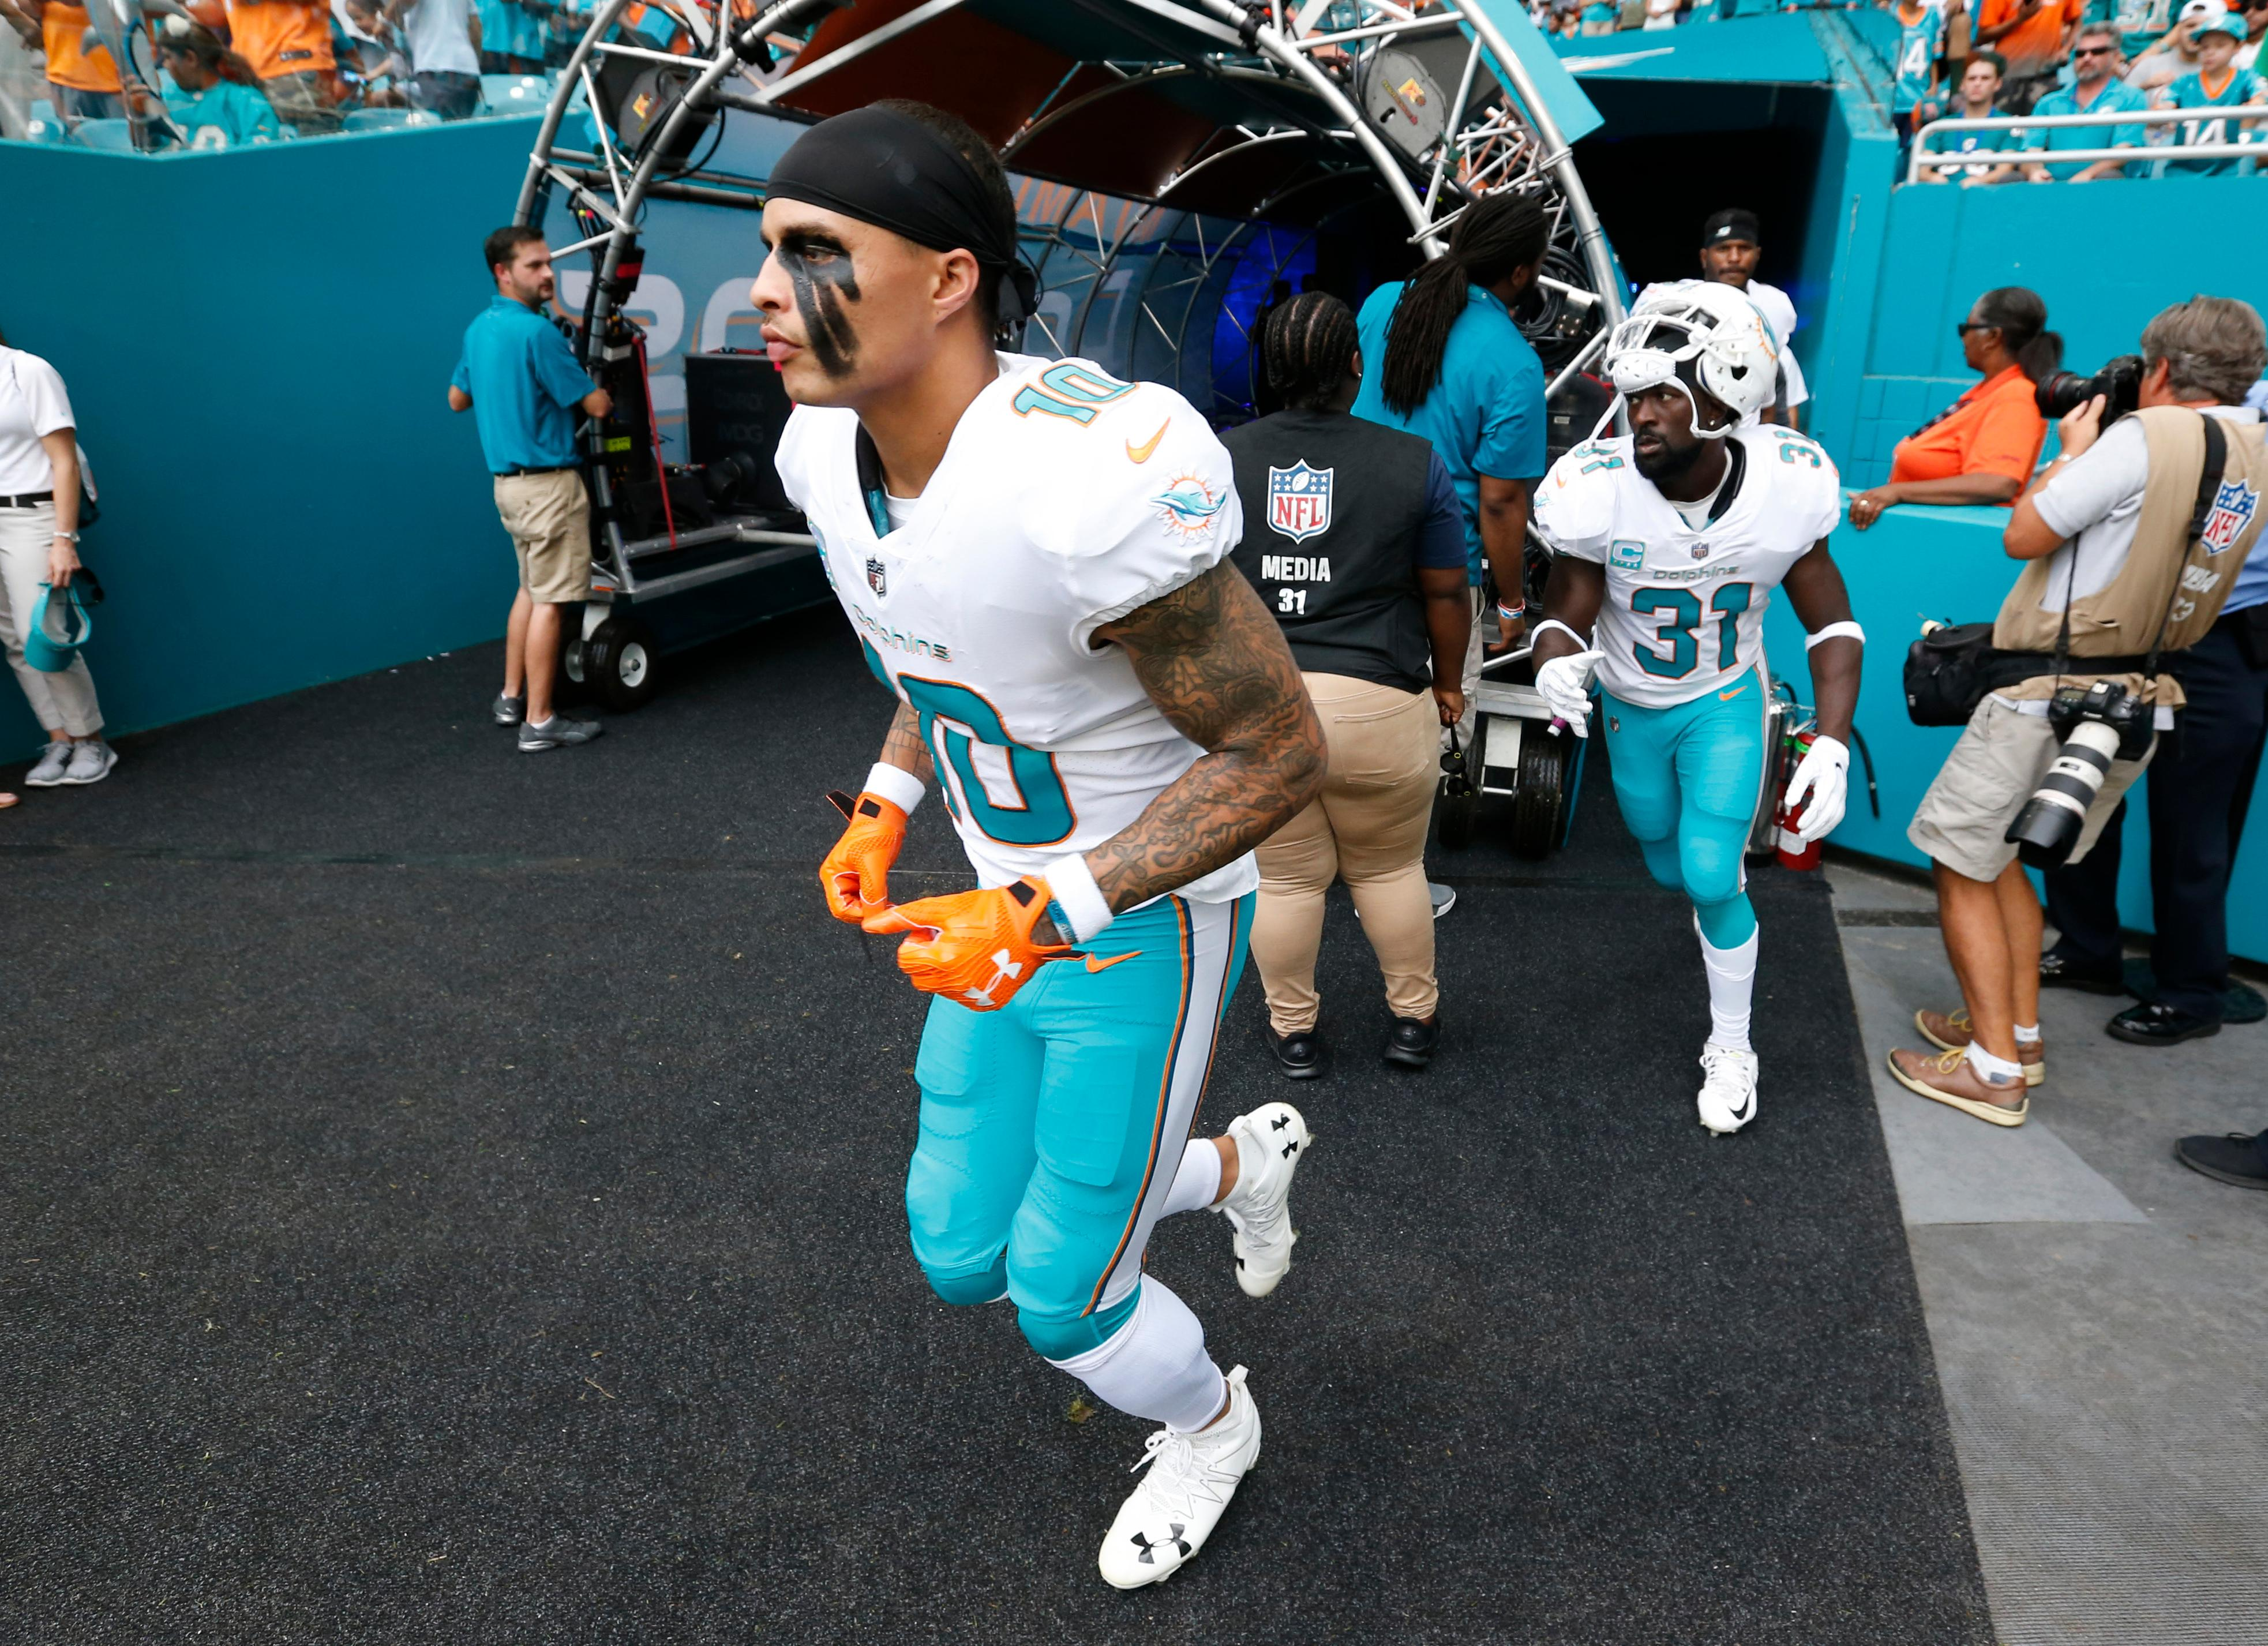 Miami Dolphins wide receiver Kenny Stills (10), free safety Michael Thomas (31) and Miami Dolphins tight end Julius Thomas (89), far right, enter the field after the National Anthem is played, during the first half of an NFL football game against the New York Jets, Sunday, Oct. 22, 2017, in Miami Gardens, Fla. (AP Photo/Wilfredo Lee)